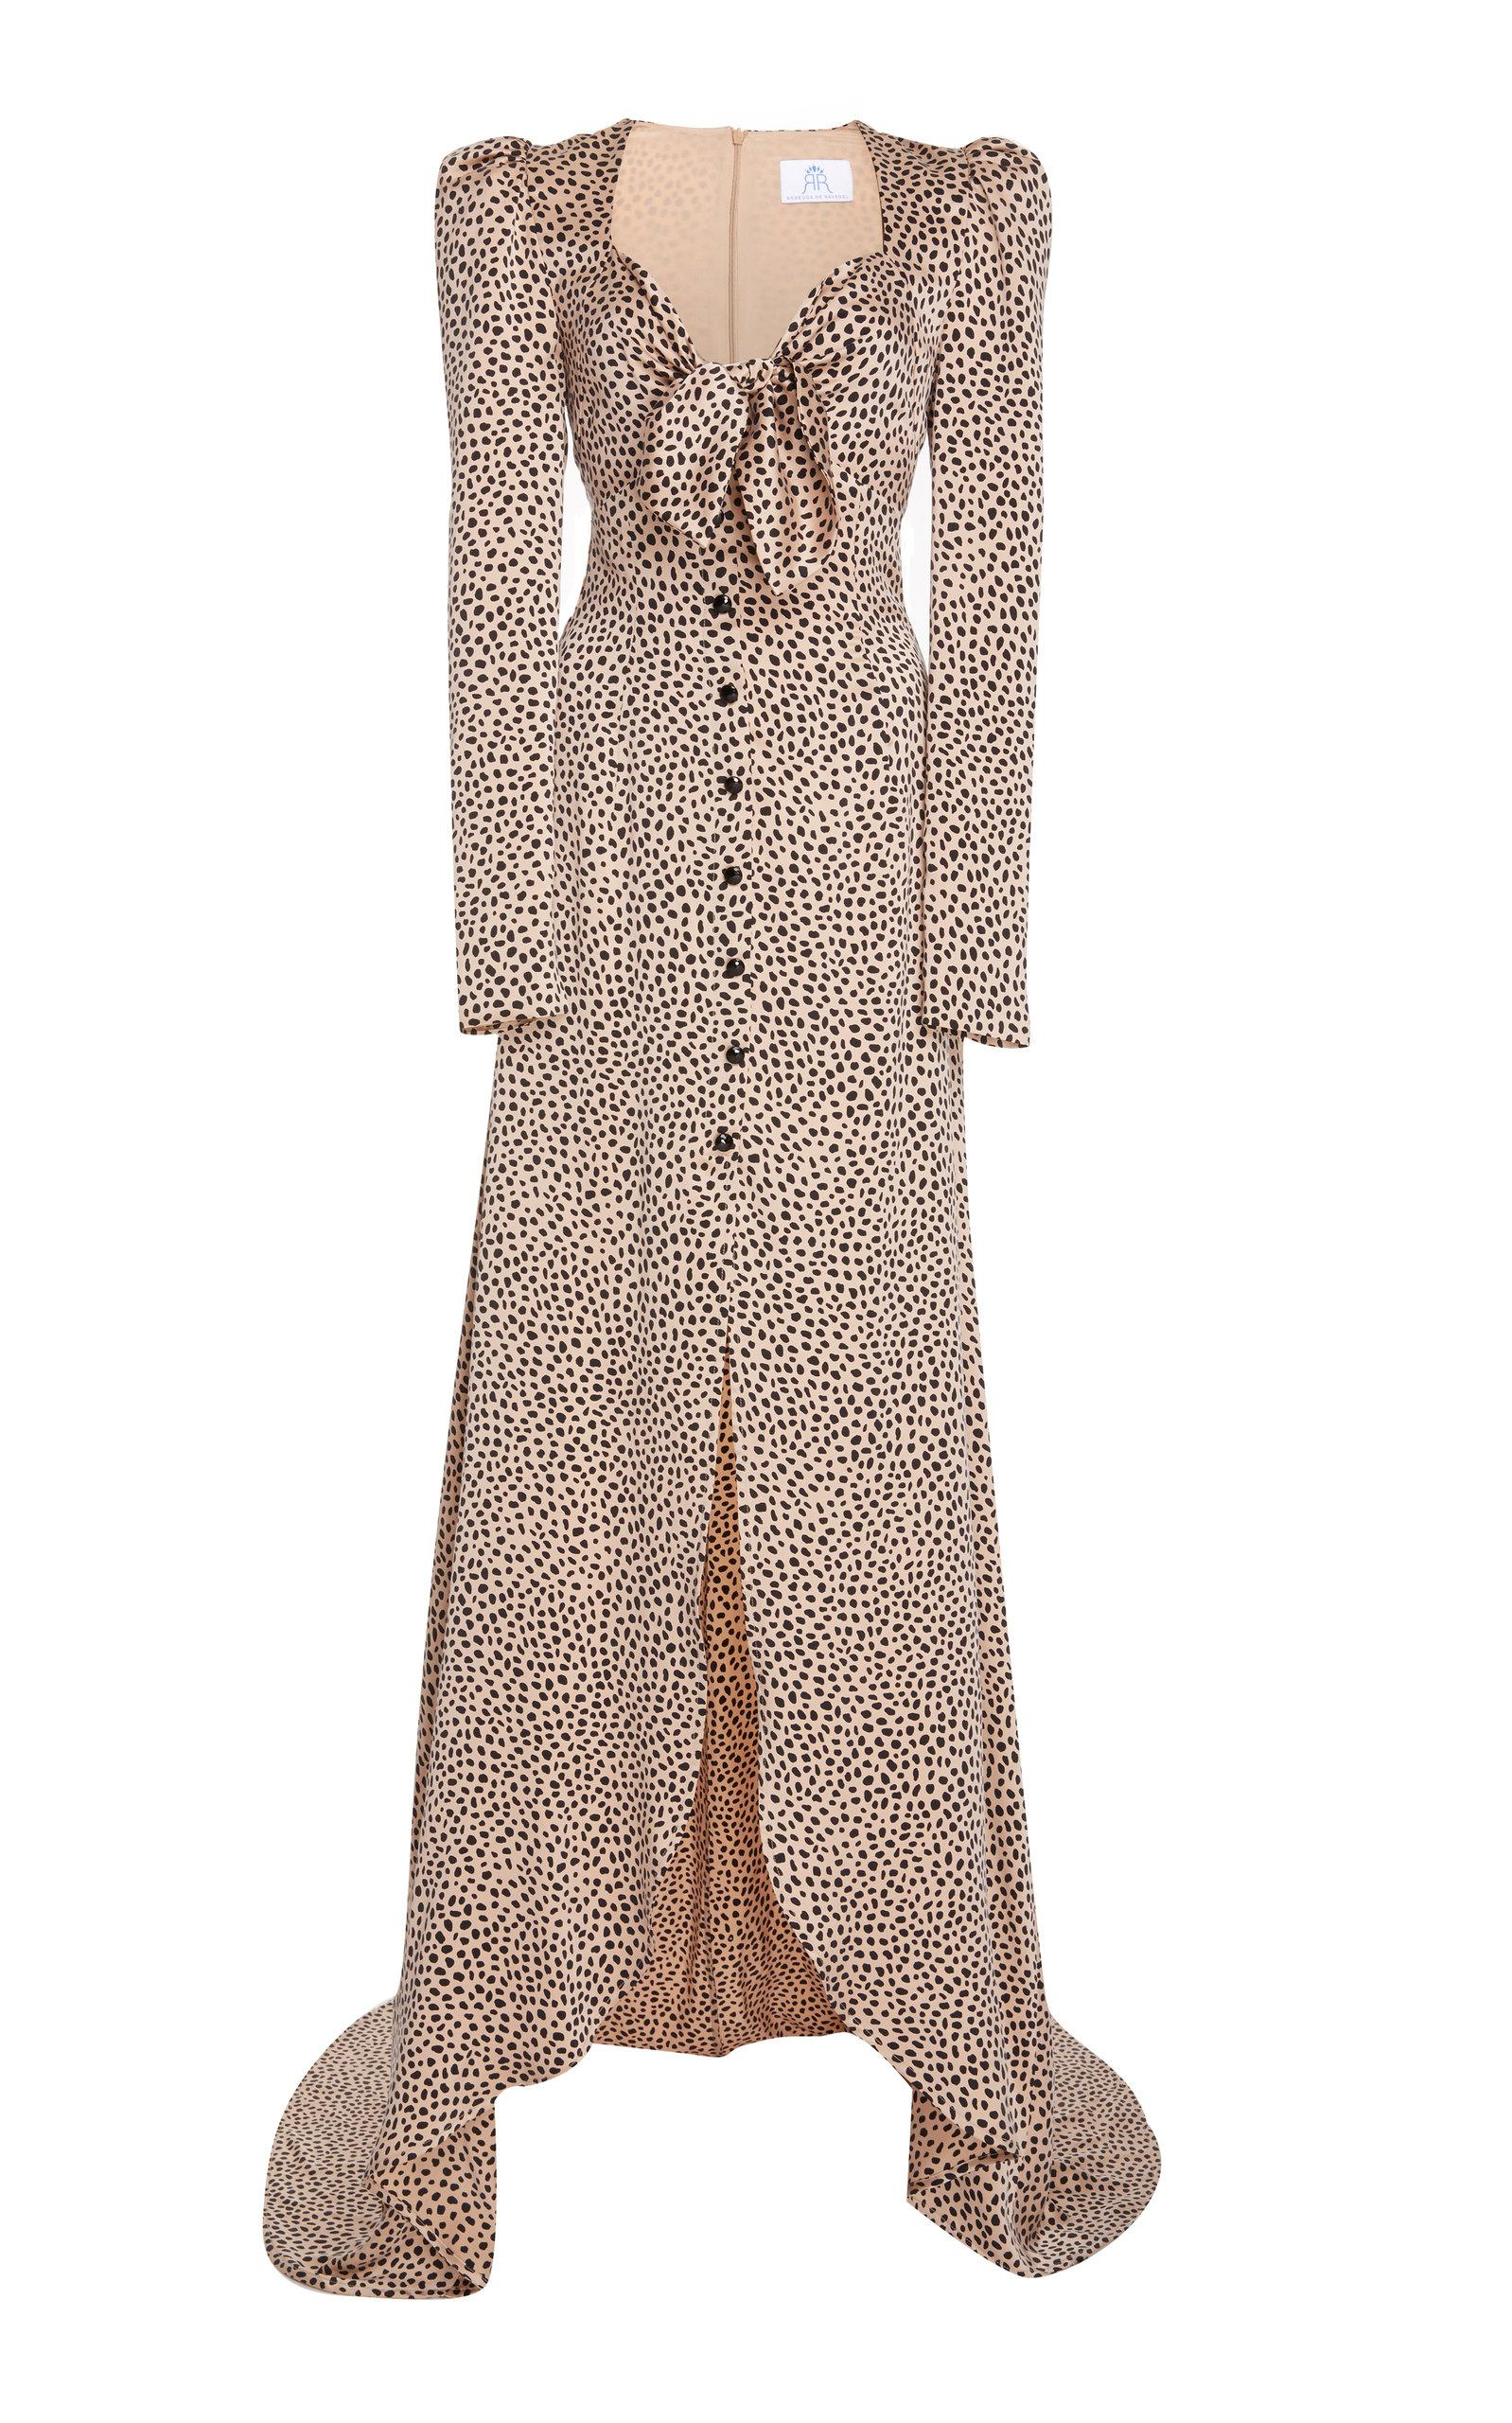 Rebecca De Ravenel Exclusive Tie-front Polka-dot Silk-charmeuse Gown In Animal